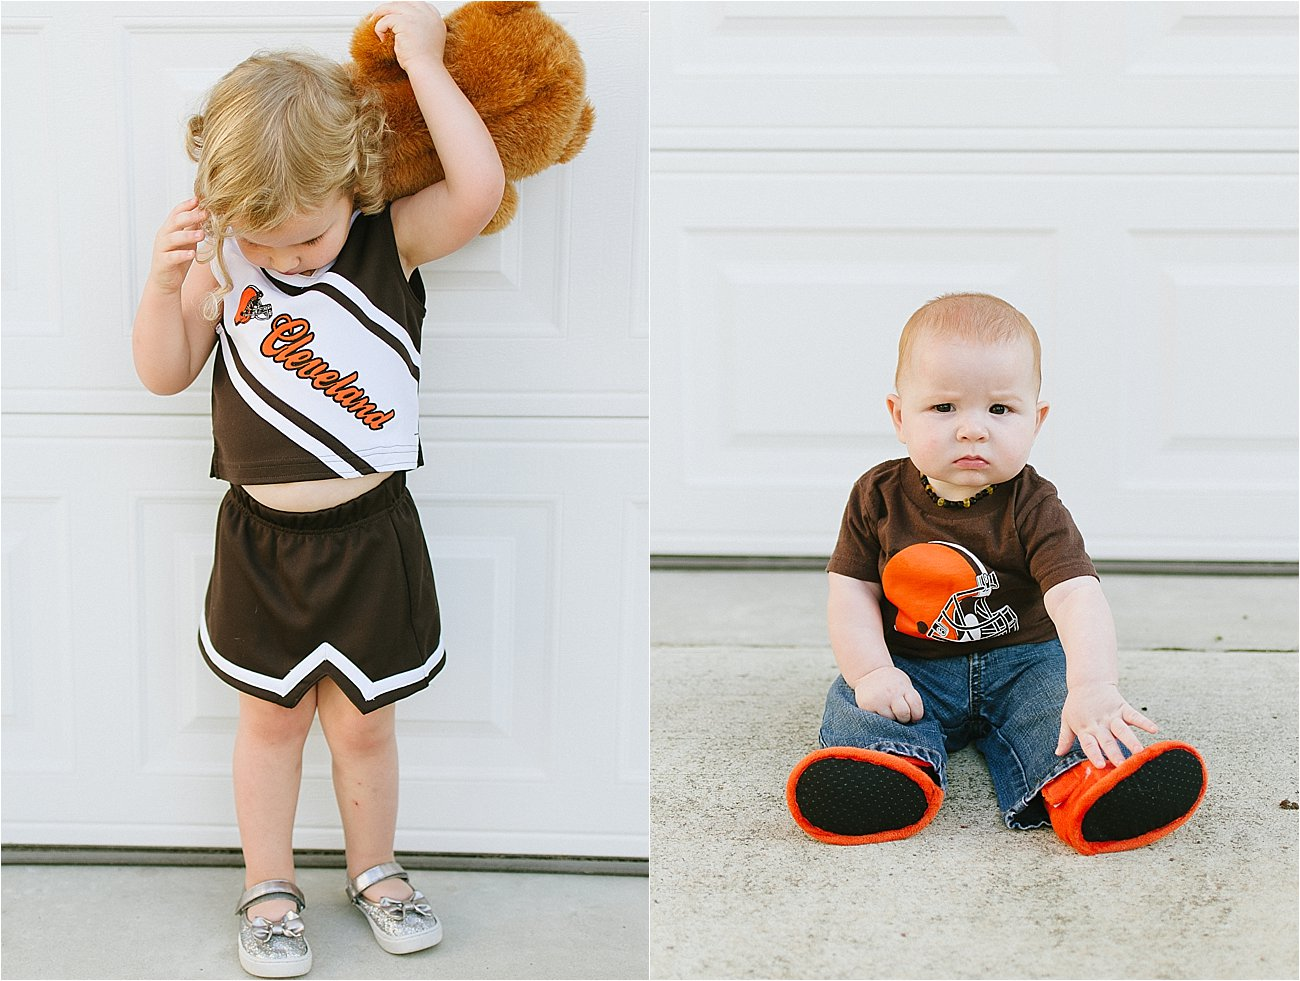 Cleveland Browns NFL Fan Style #NFLfanstyle #cg #ad (11)